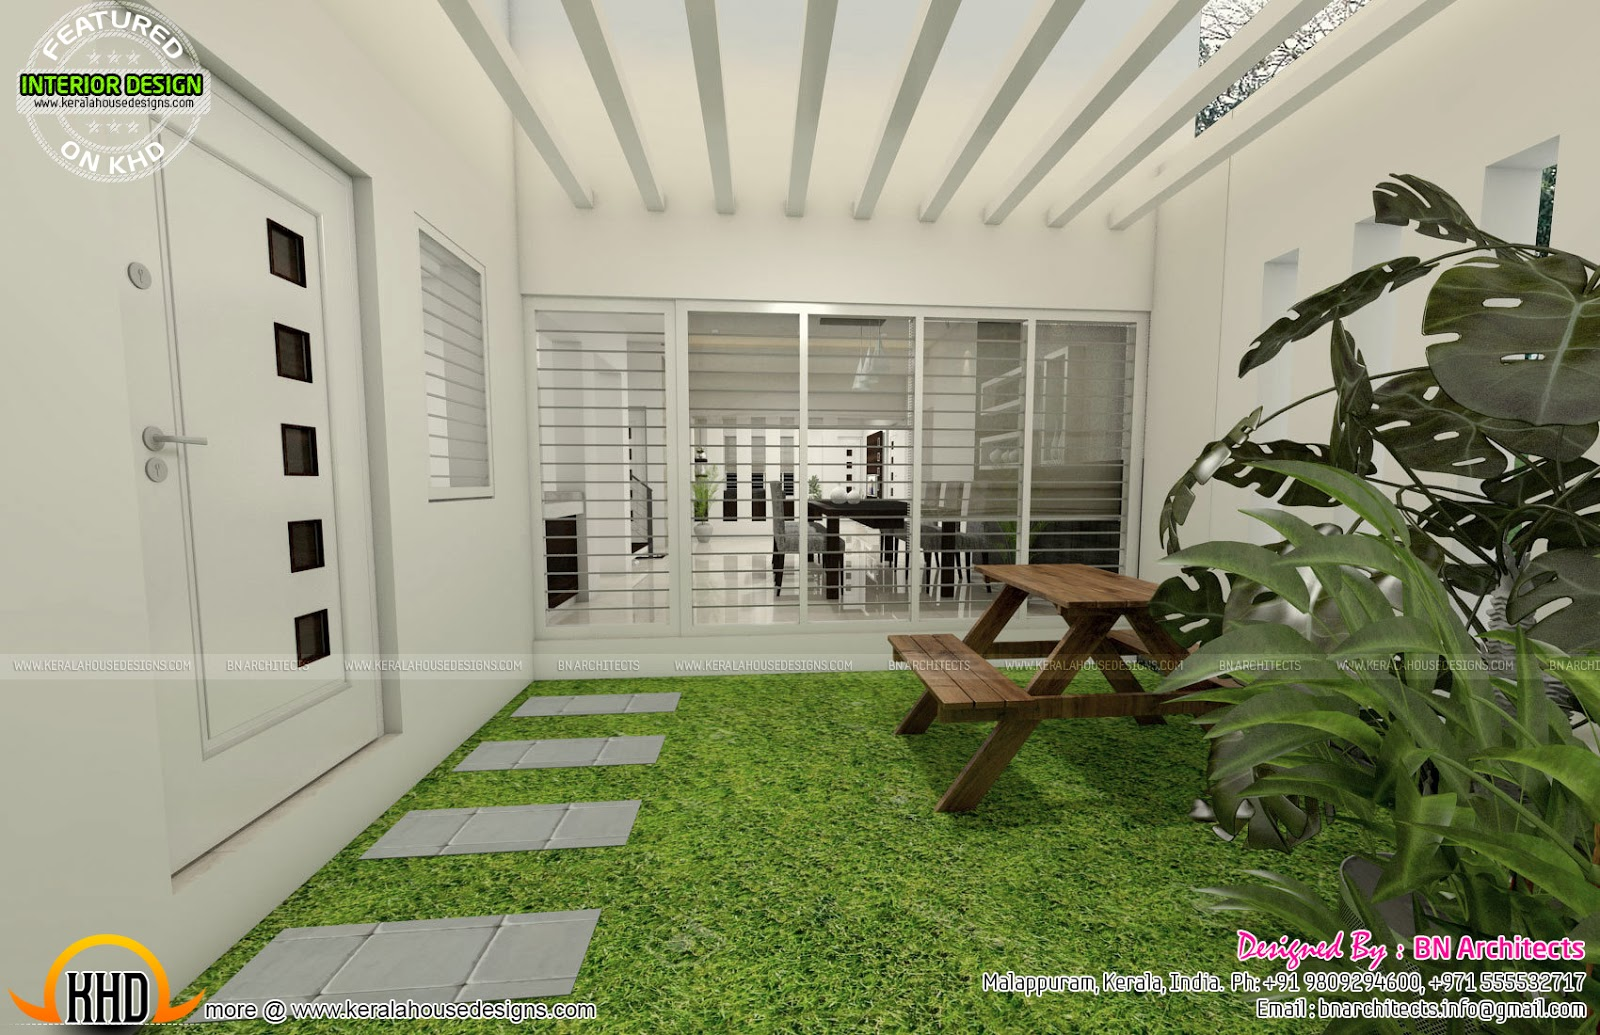 kerala home design courtyard ideasidea all in one house elevation floor plan and interiors kerala courtyard house plans kerala internal internal